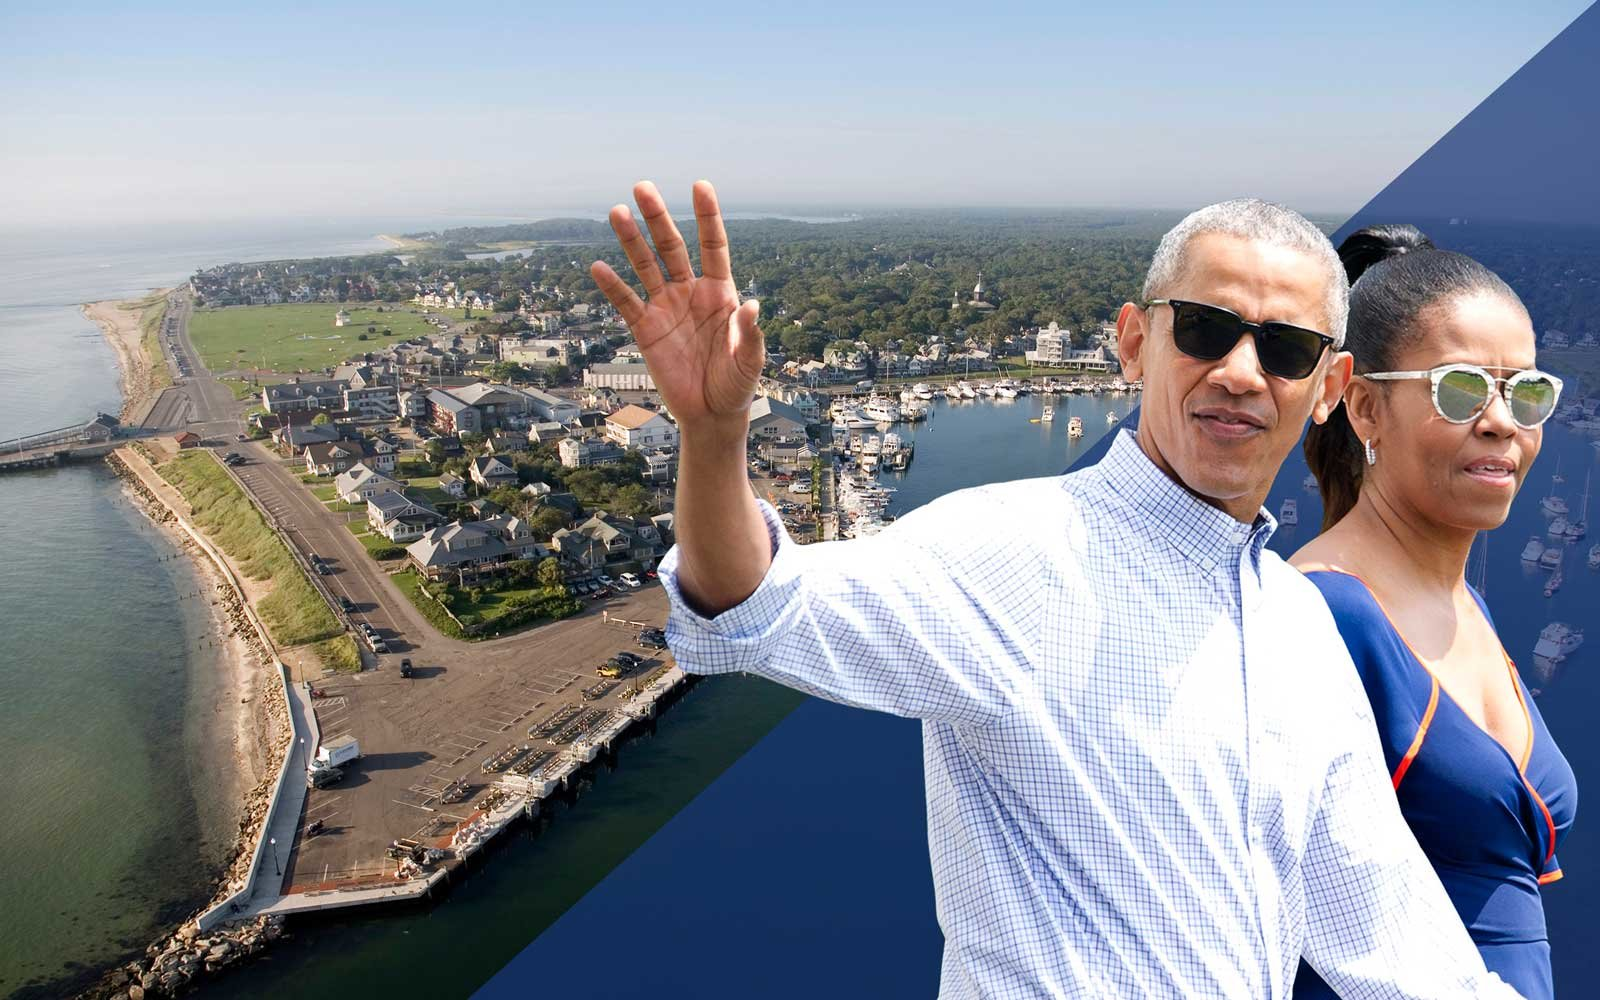 The Obama\'s Vacation House on Martha\'s Vineyard Is for Sale | Travel ...